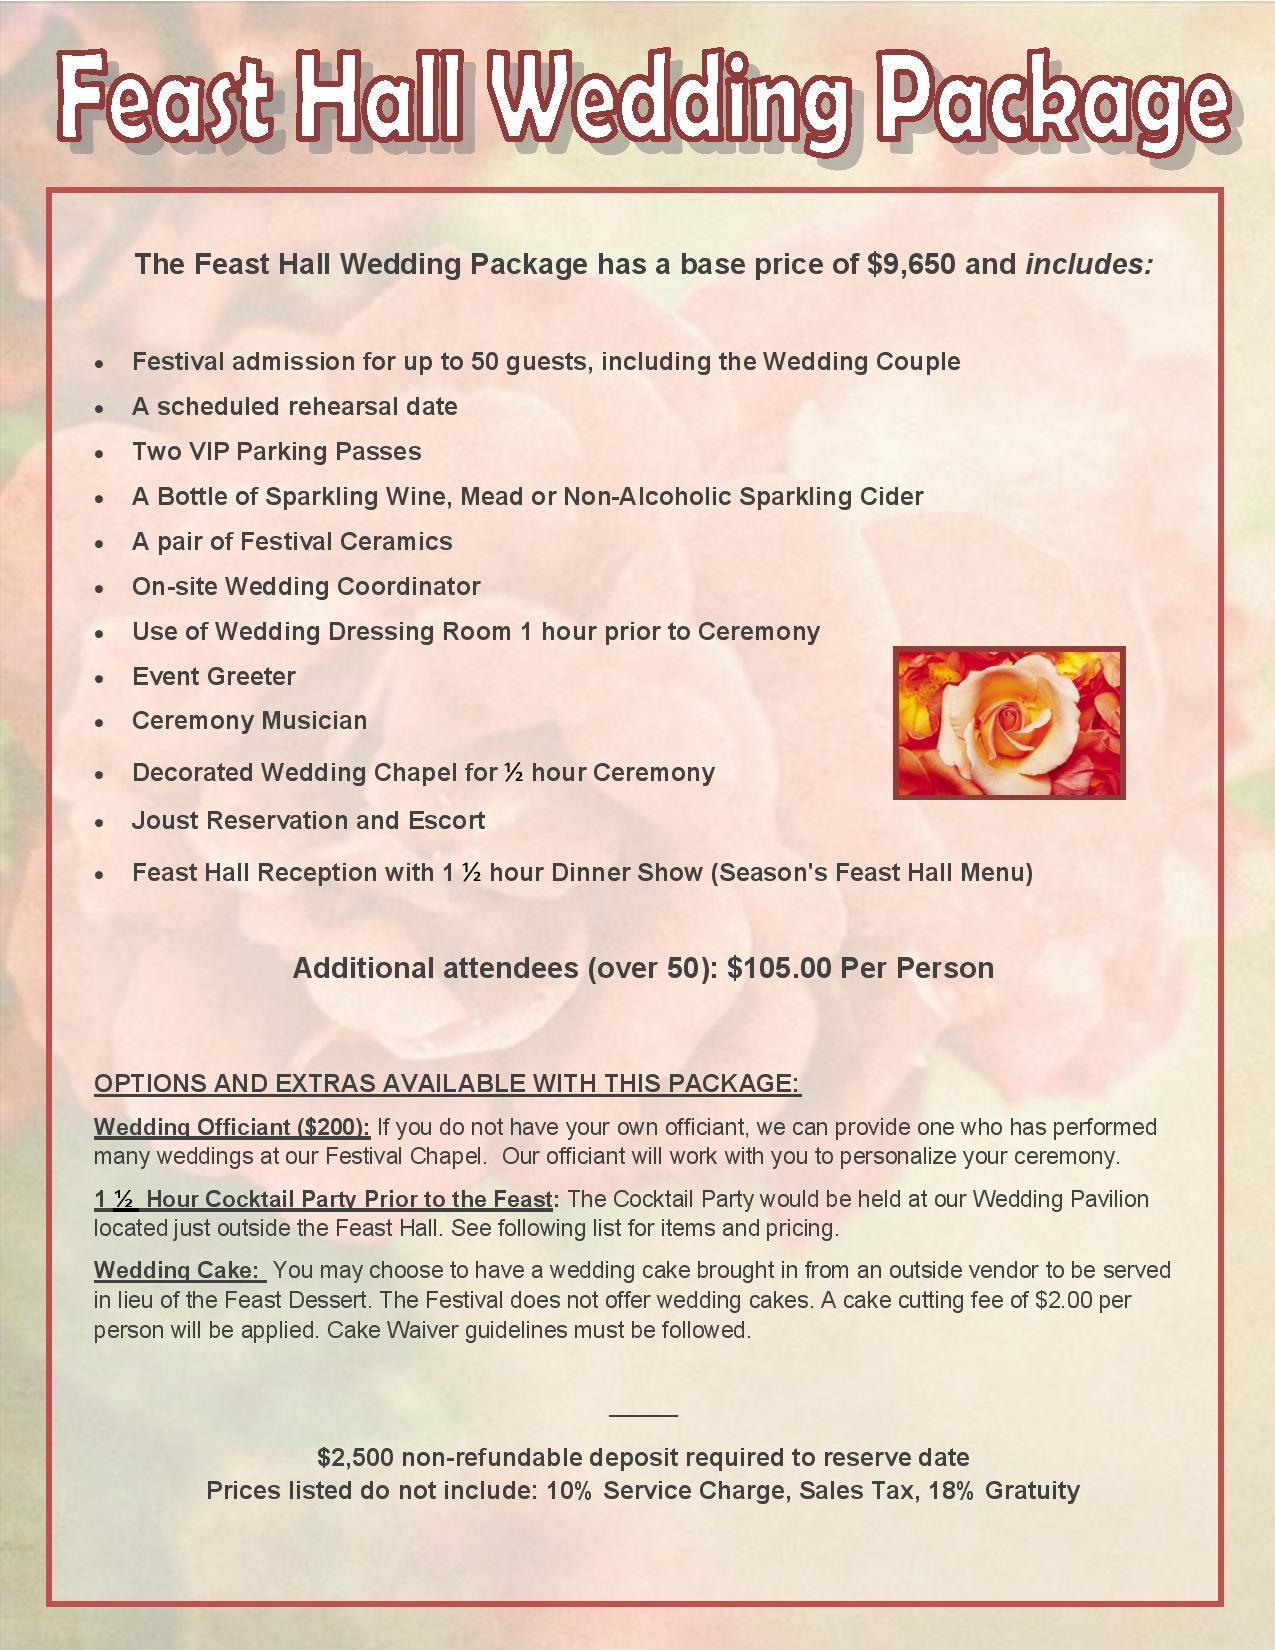 2022 Feast Hall Wedding Package